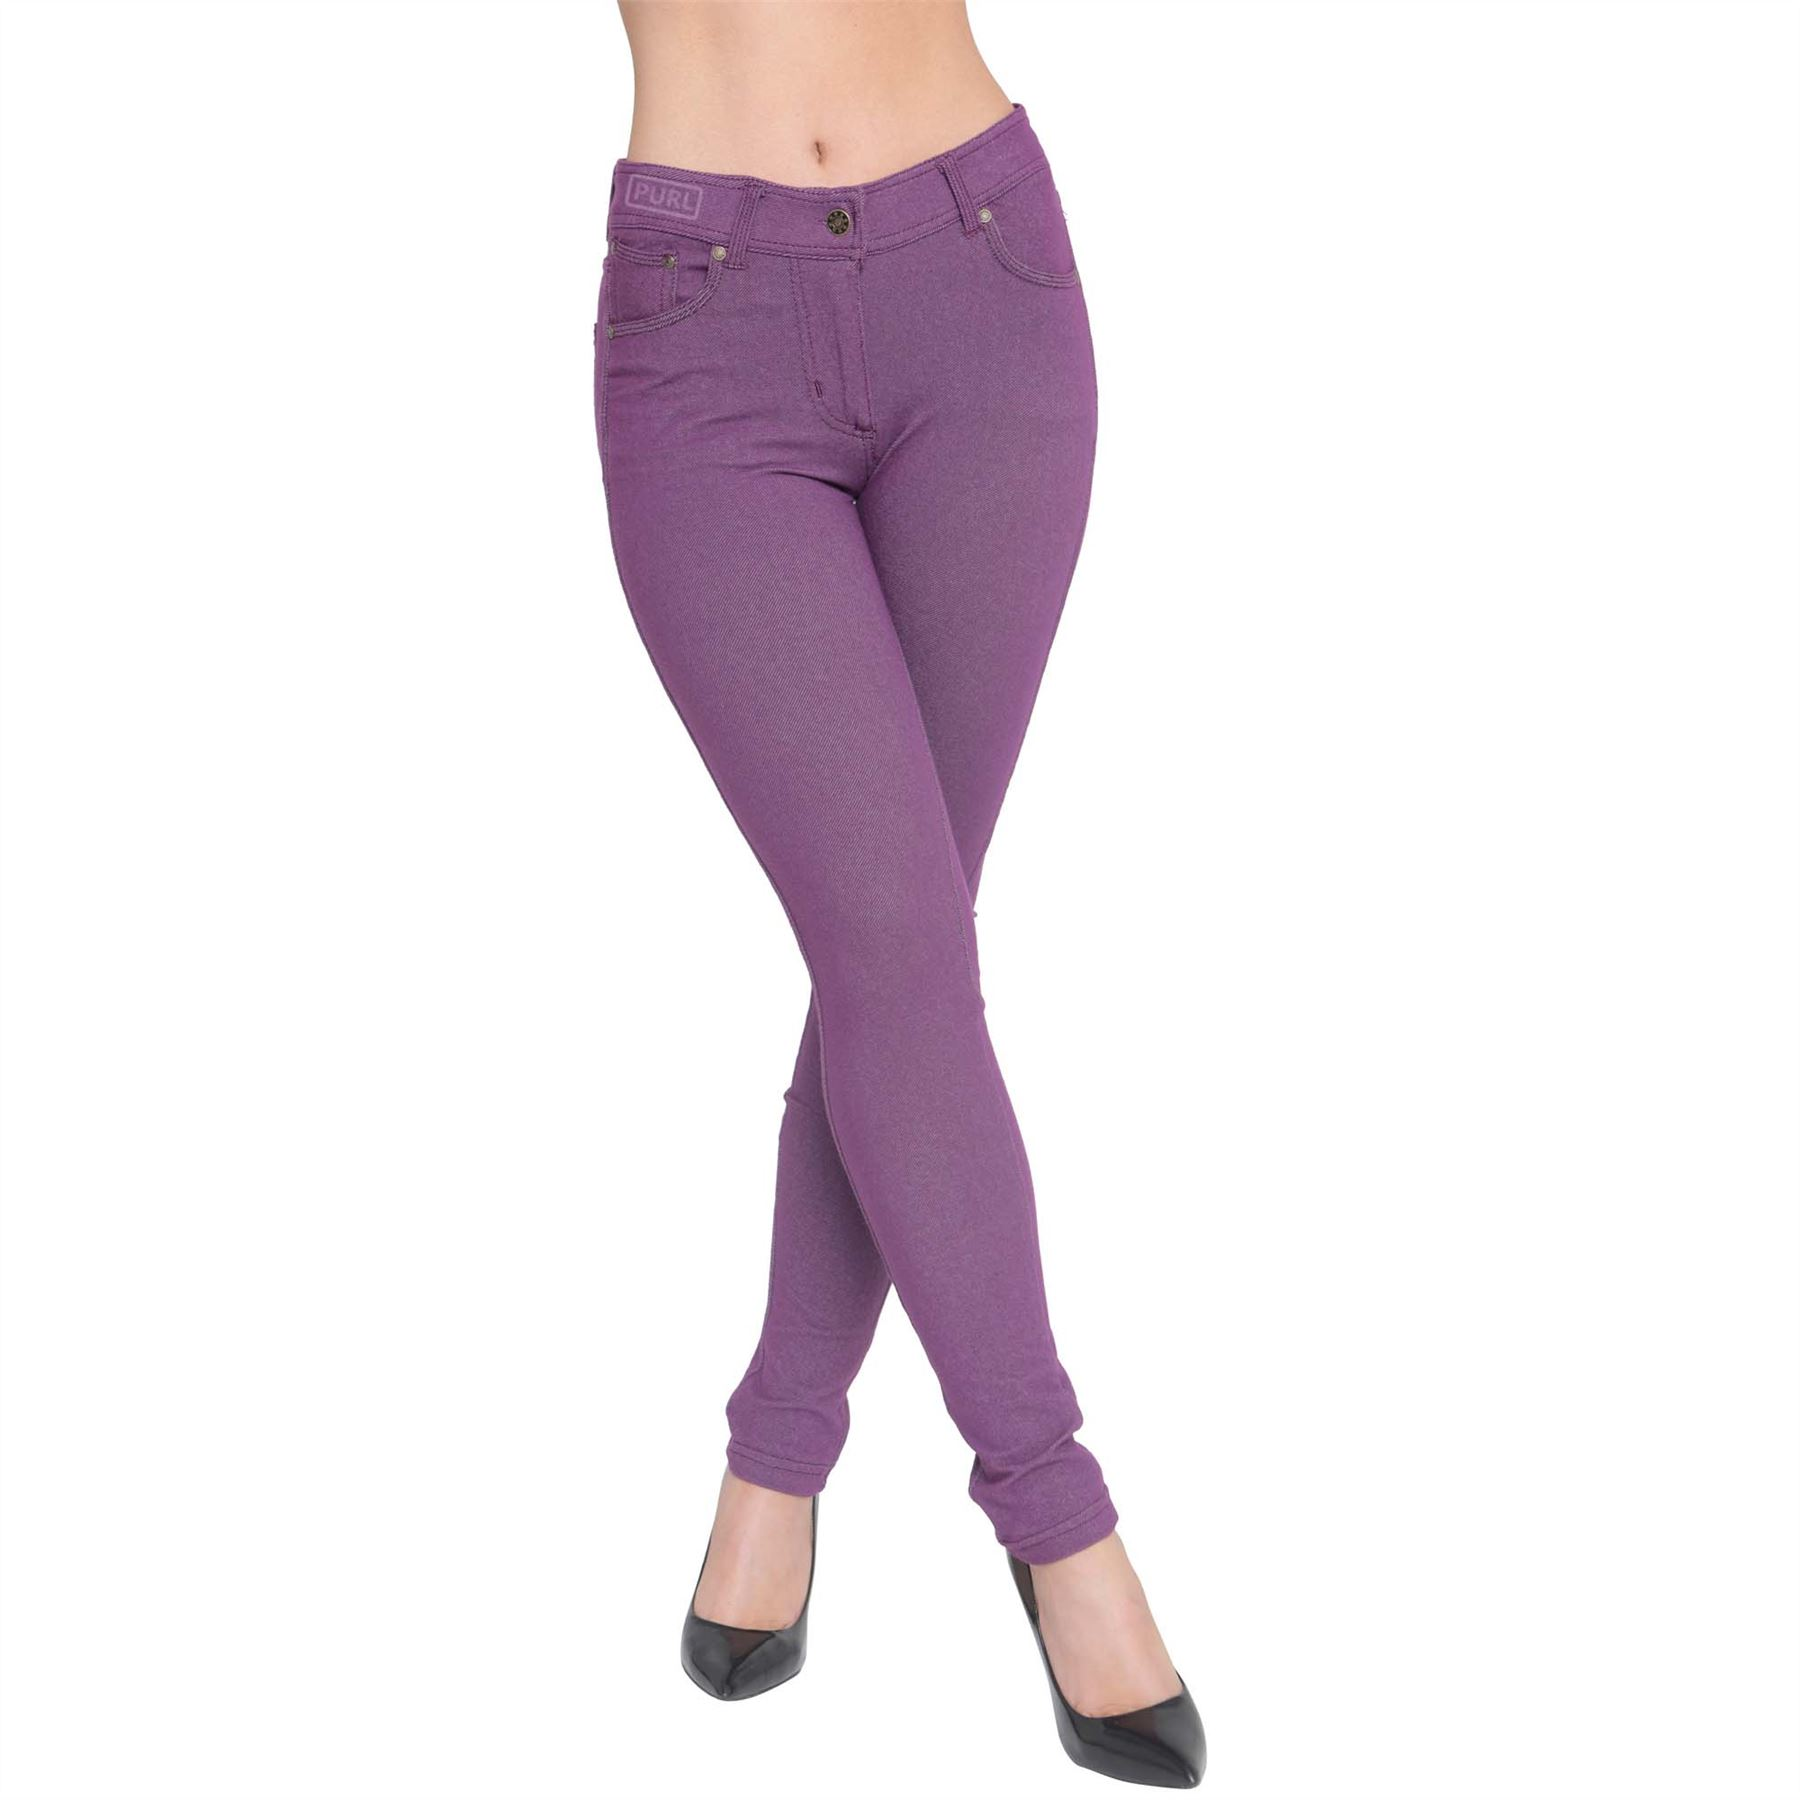 Womens-Skinny-Jeans-Fit-Coloured-Jeggings-Stretchy-Trousers-Summer-Size-8-26